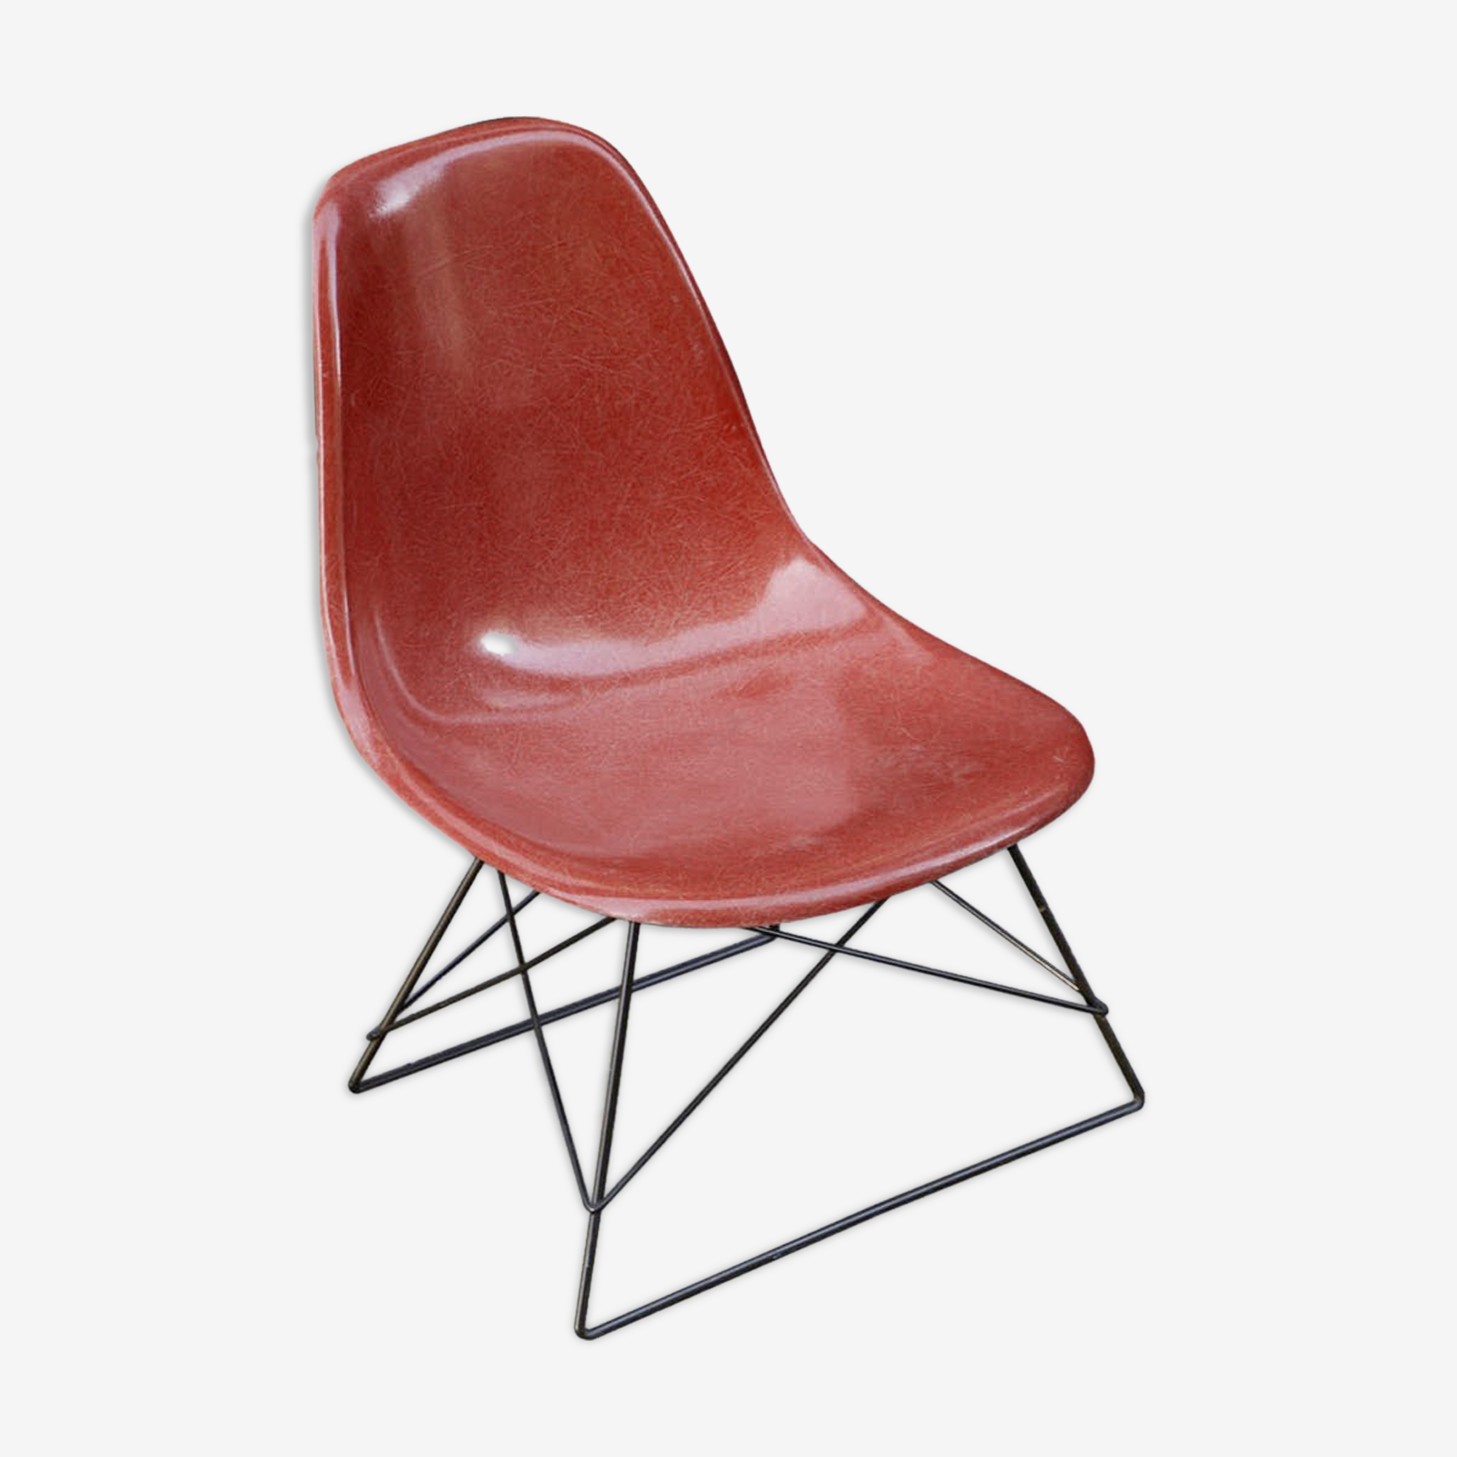 Chair Low Rod Base cats cradle Eames vintage Herman Miller original